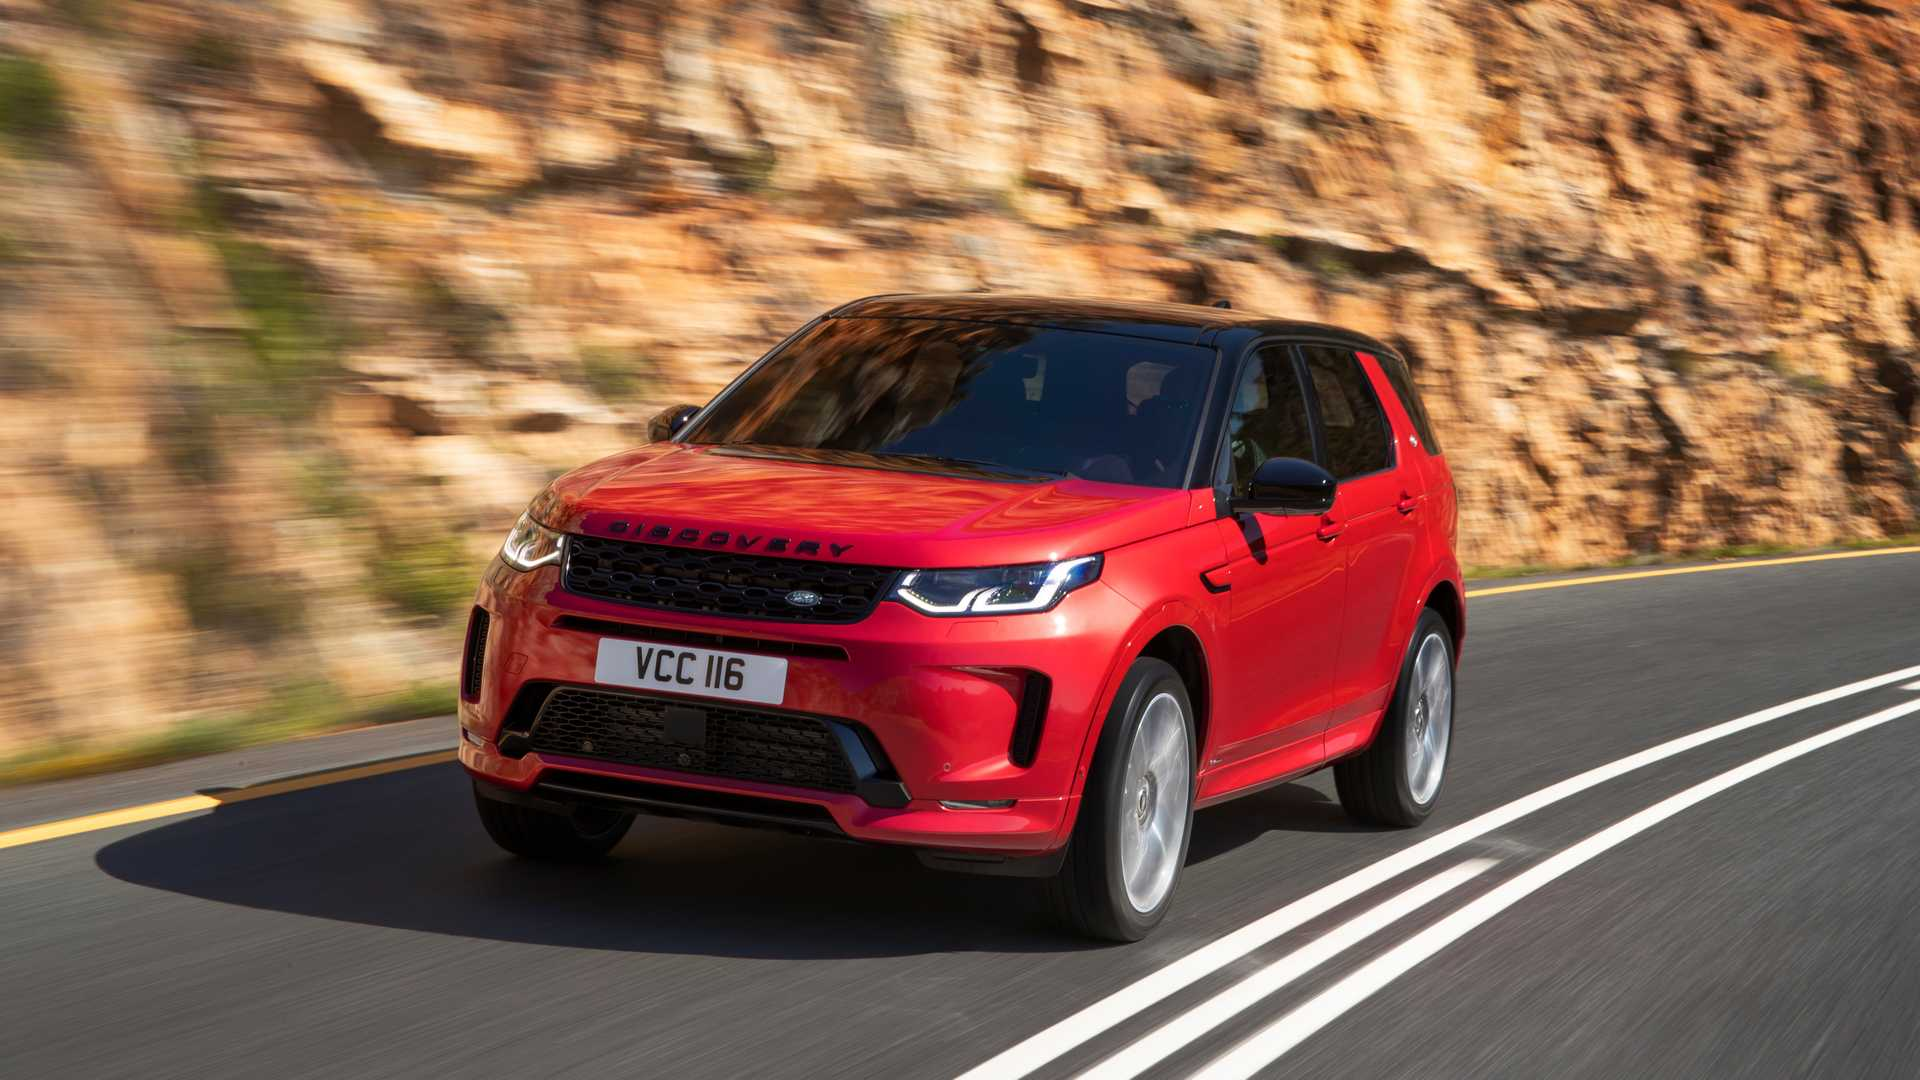 2021 Land Rover Discovery Details Emerge, Mild Hybrid Planned